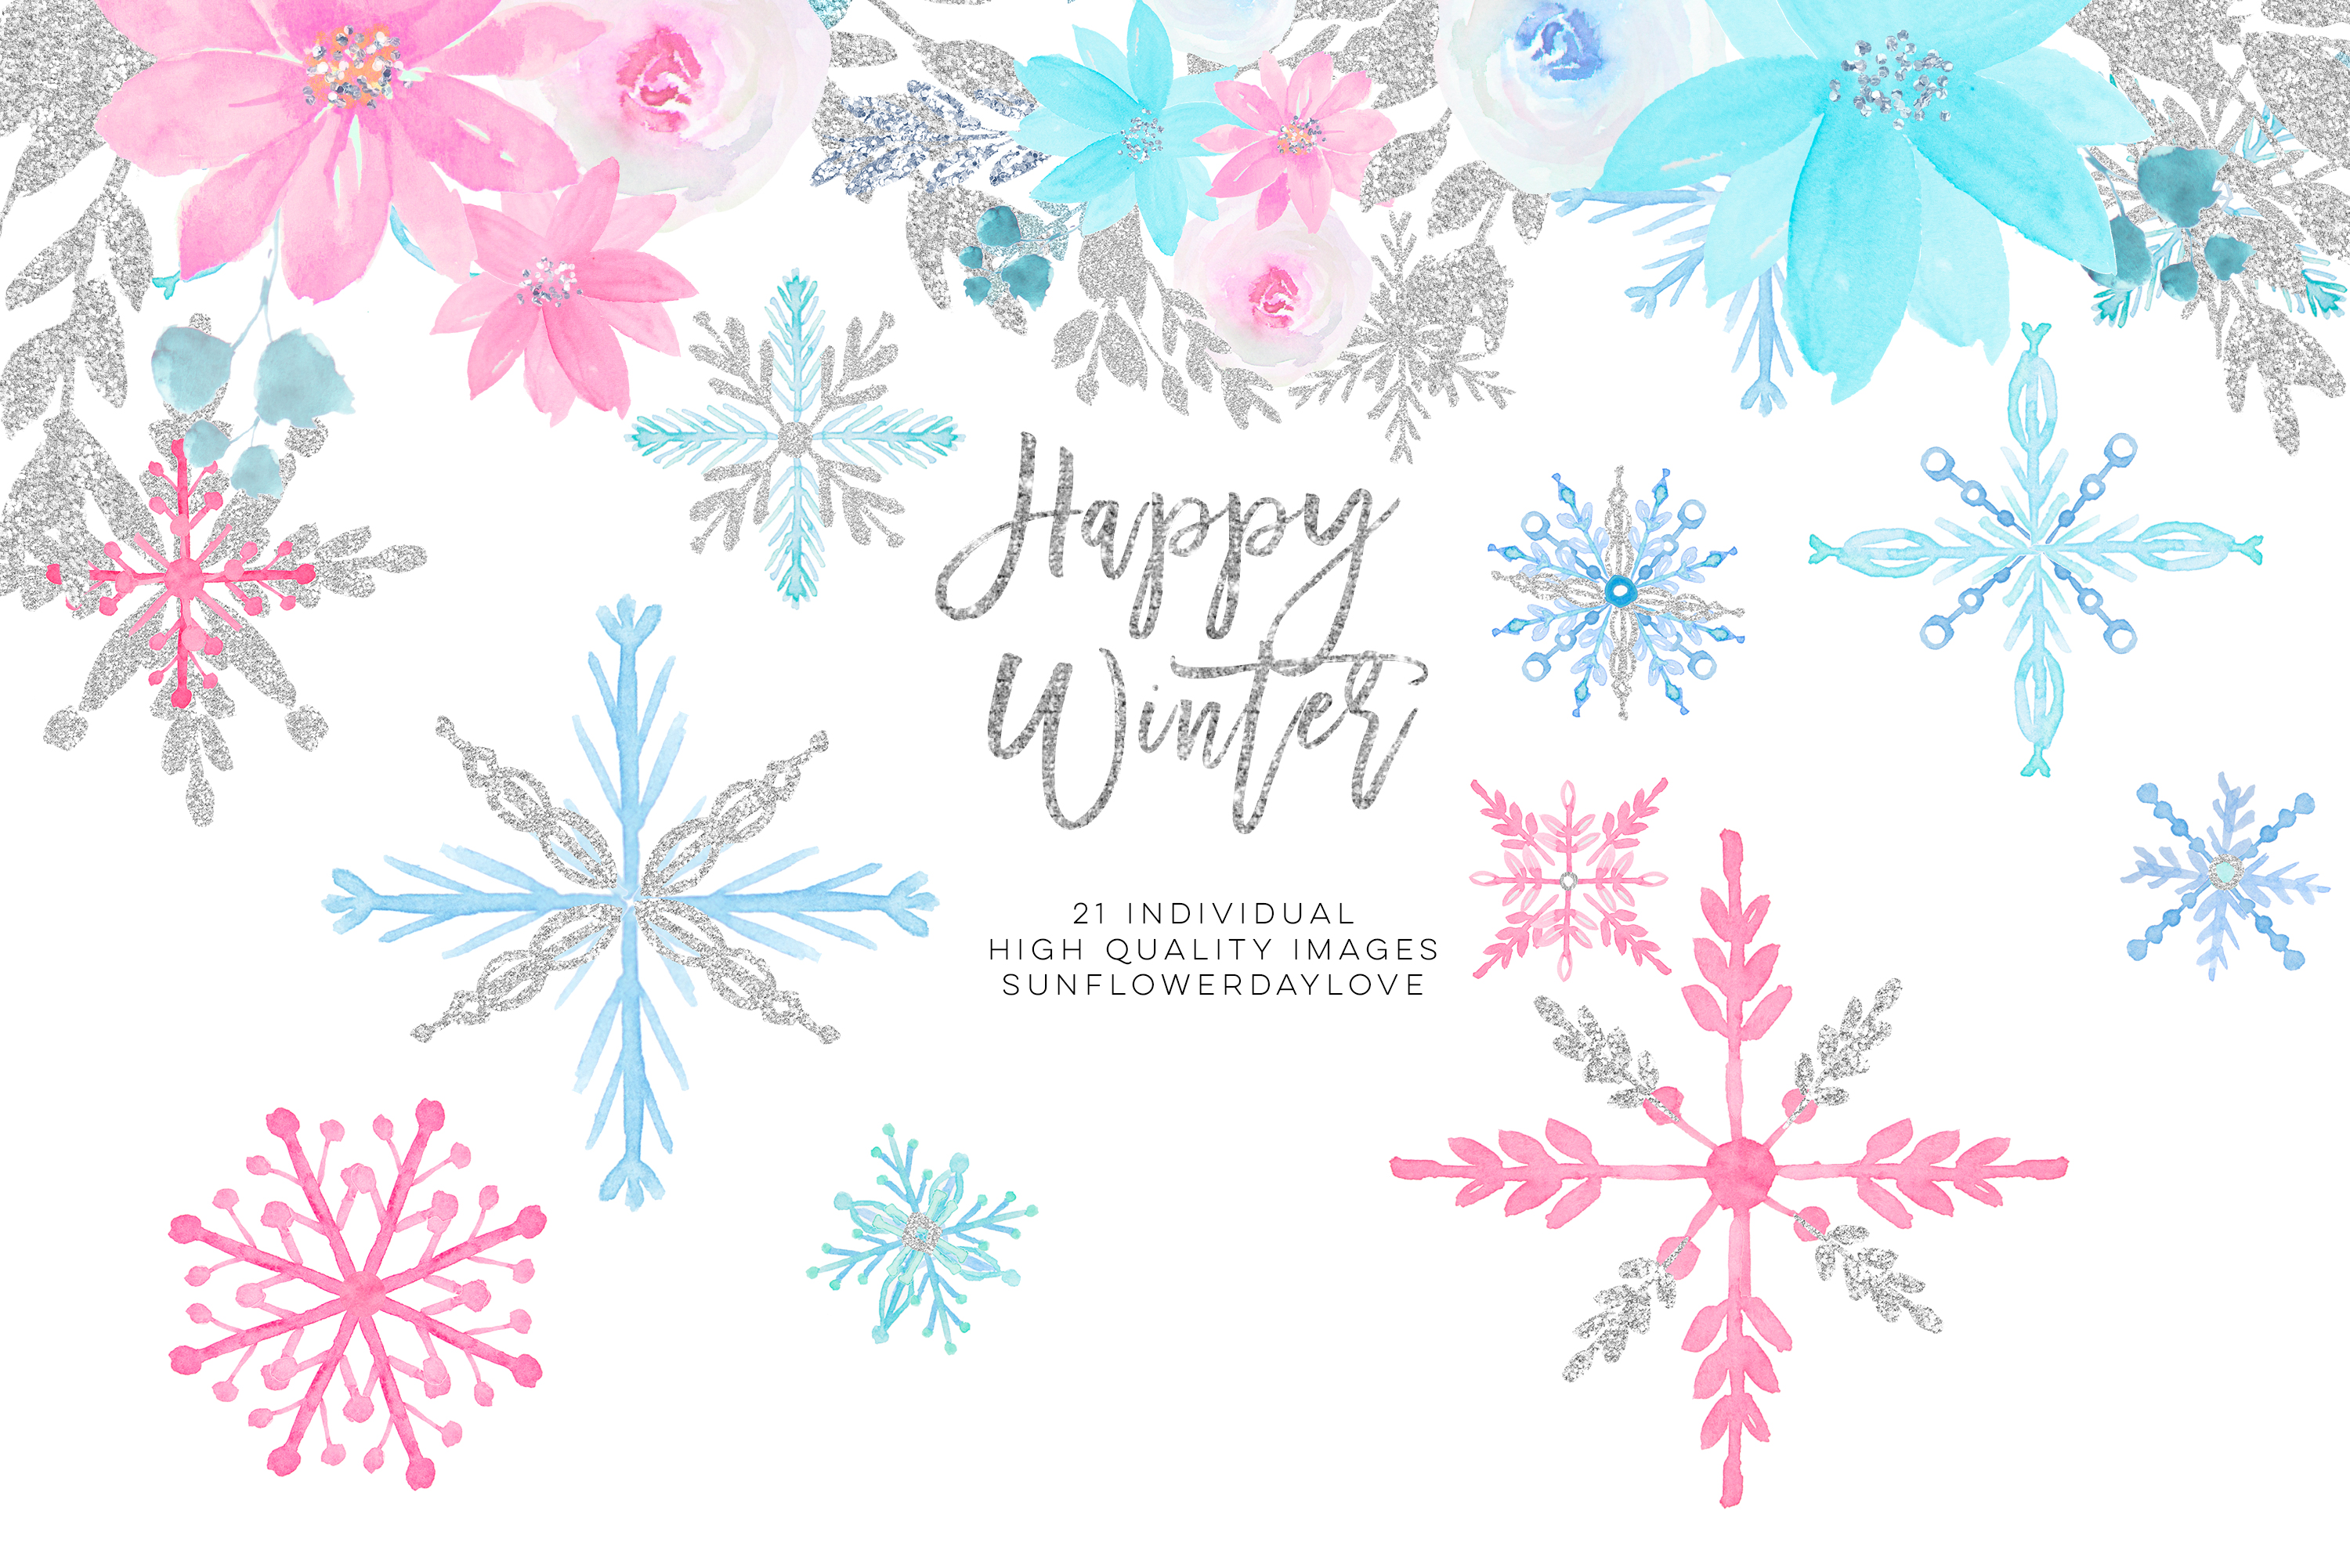 Winter onederland clipart, winter snowflakes clipart example image 4